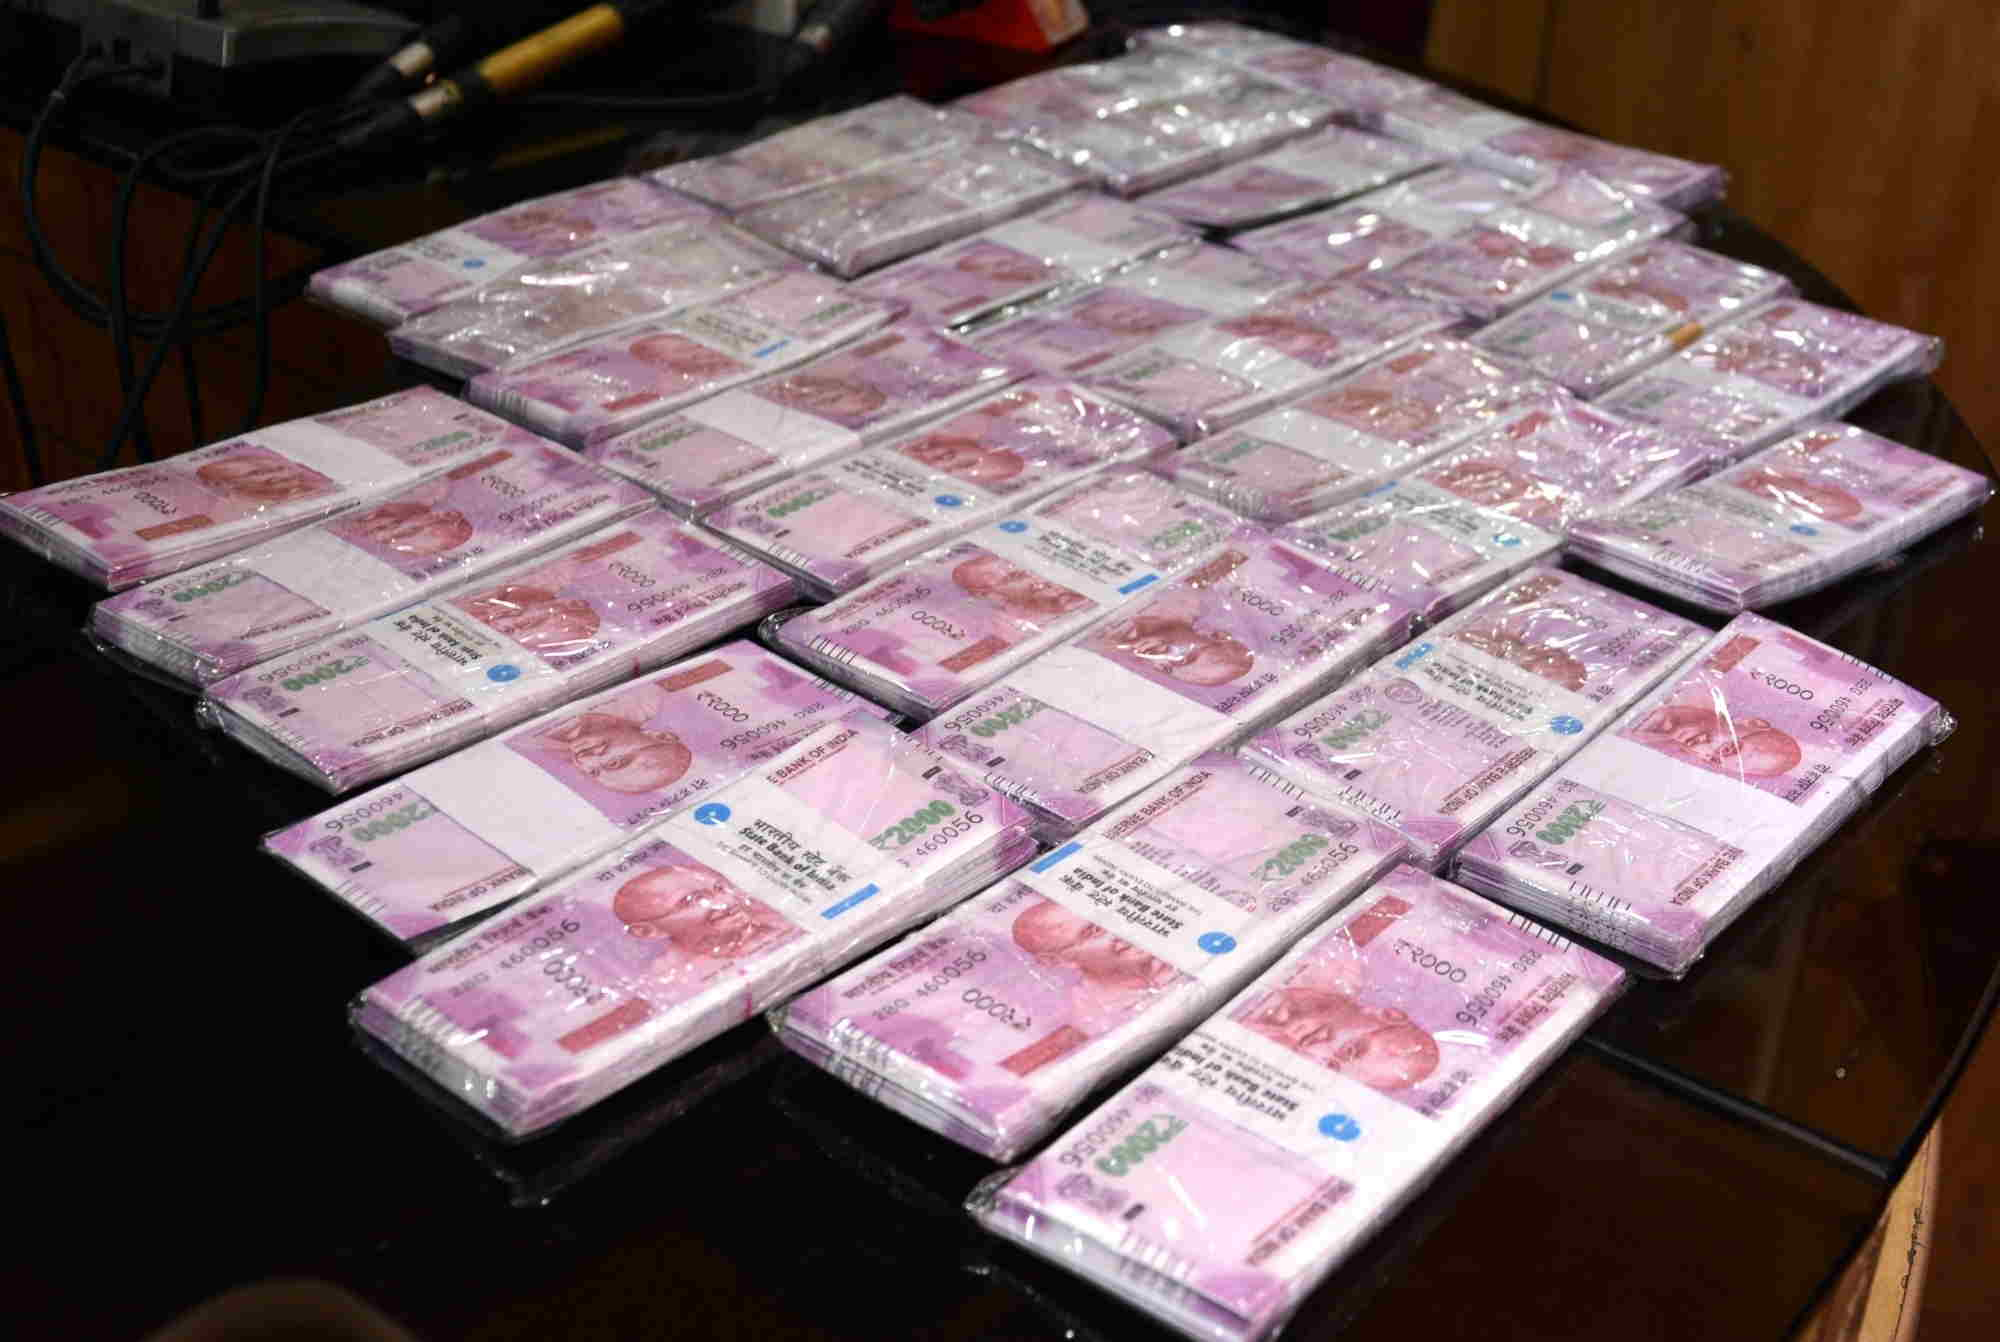 Shortly before the lockdown in 2020, Javed Ghulamnabi Sheikh, a key operative of the Dawood Ibrahim gang, was arrested from Mumbai airport with high-quality fake Indian currency notes worth over Rs 23 lakh